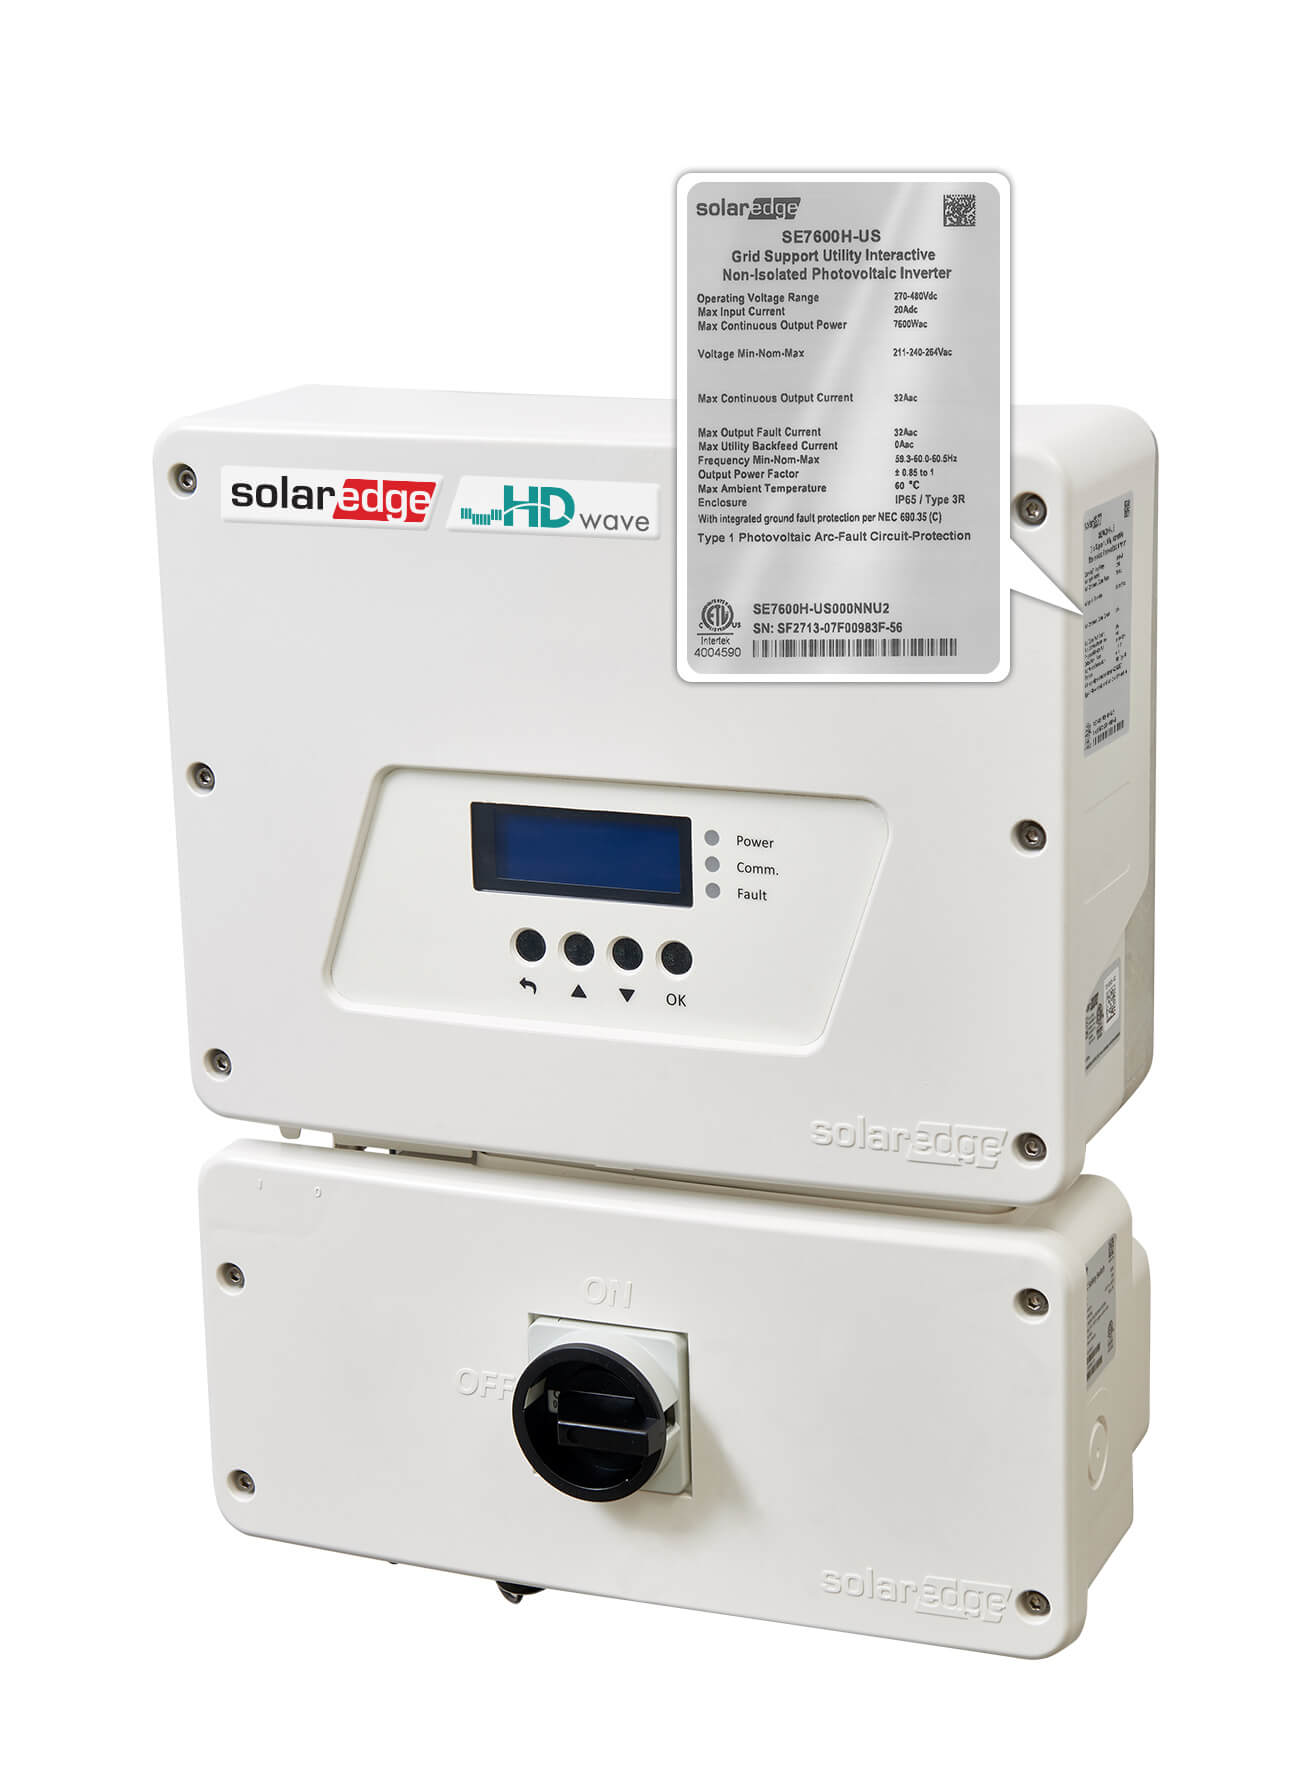 Solaredge SolarEdge Inverter Lineup Now Available With UL 1741 SA Certification